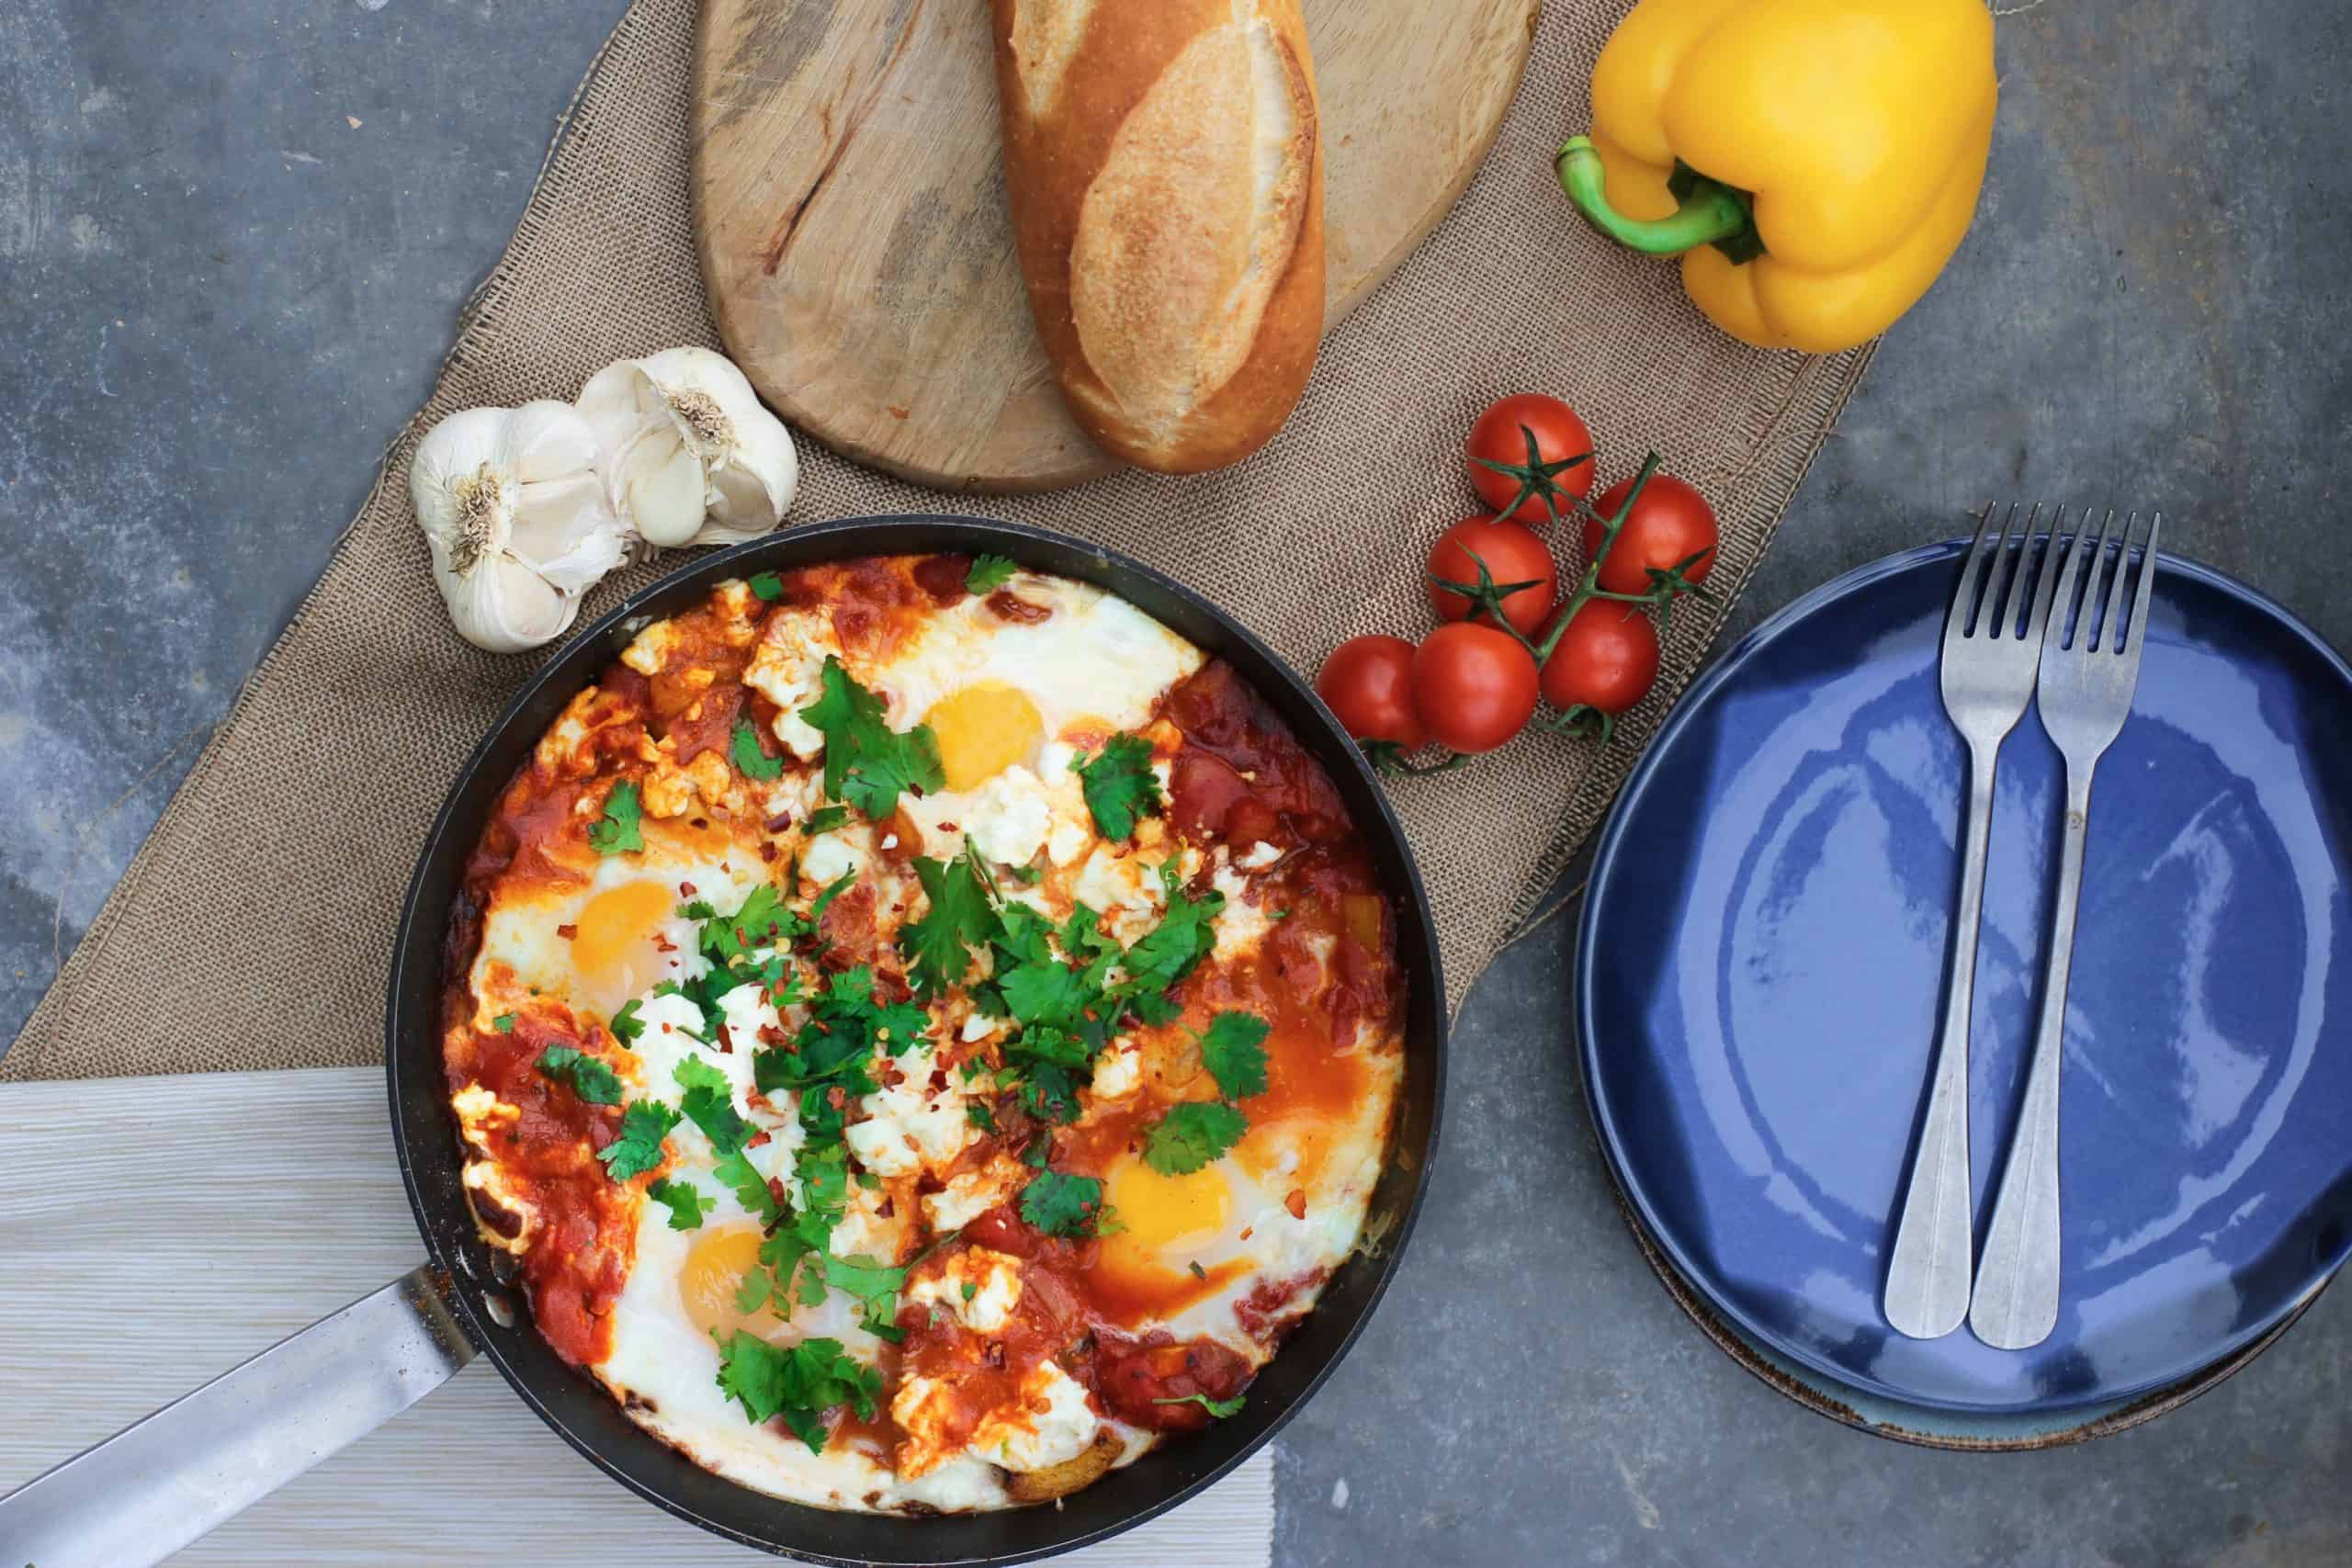 a flat-lay photo of omelette and other dish beside it